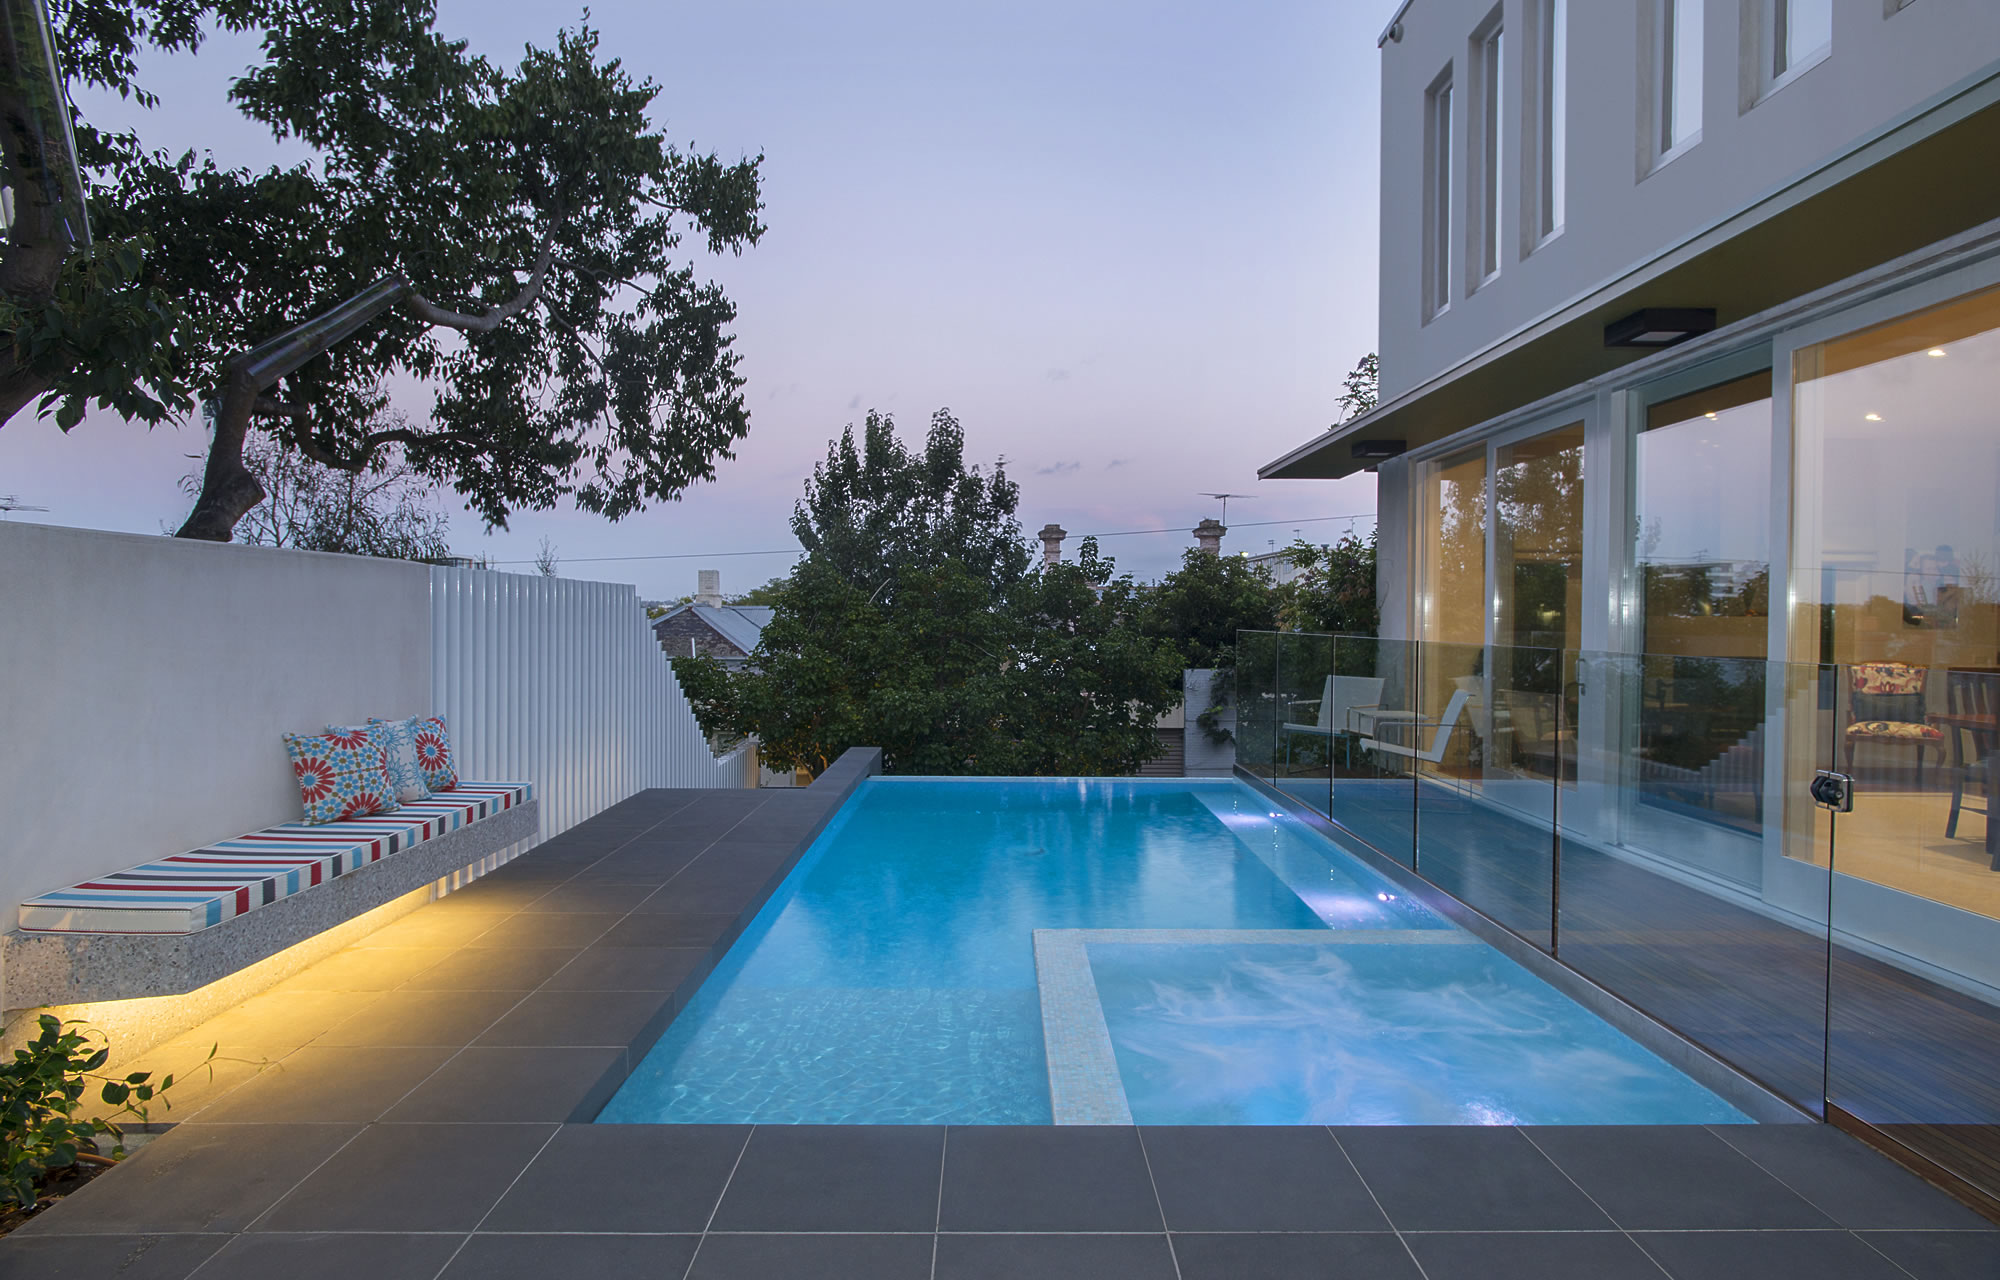 Design Of Swimming Pool indoor swimming pool home design Oftb Melbourne Swimming Pool Builders Landscape Architecture Design Custom Concrete Construction Spas Plunge Pools Lap Pools Infinity Edge